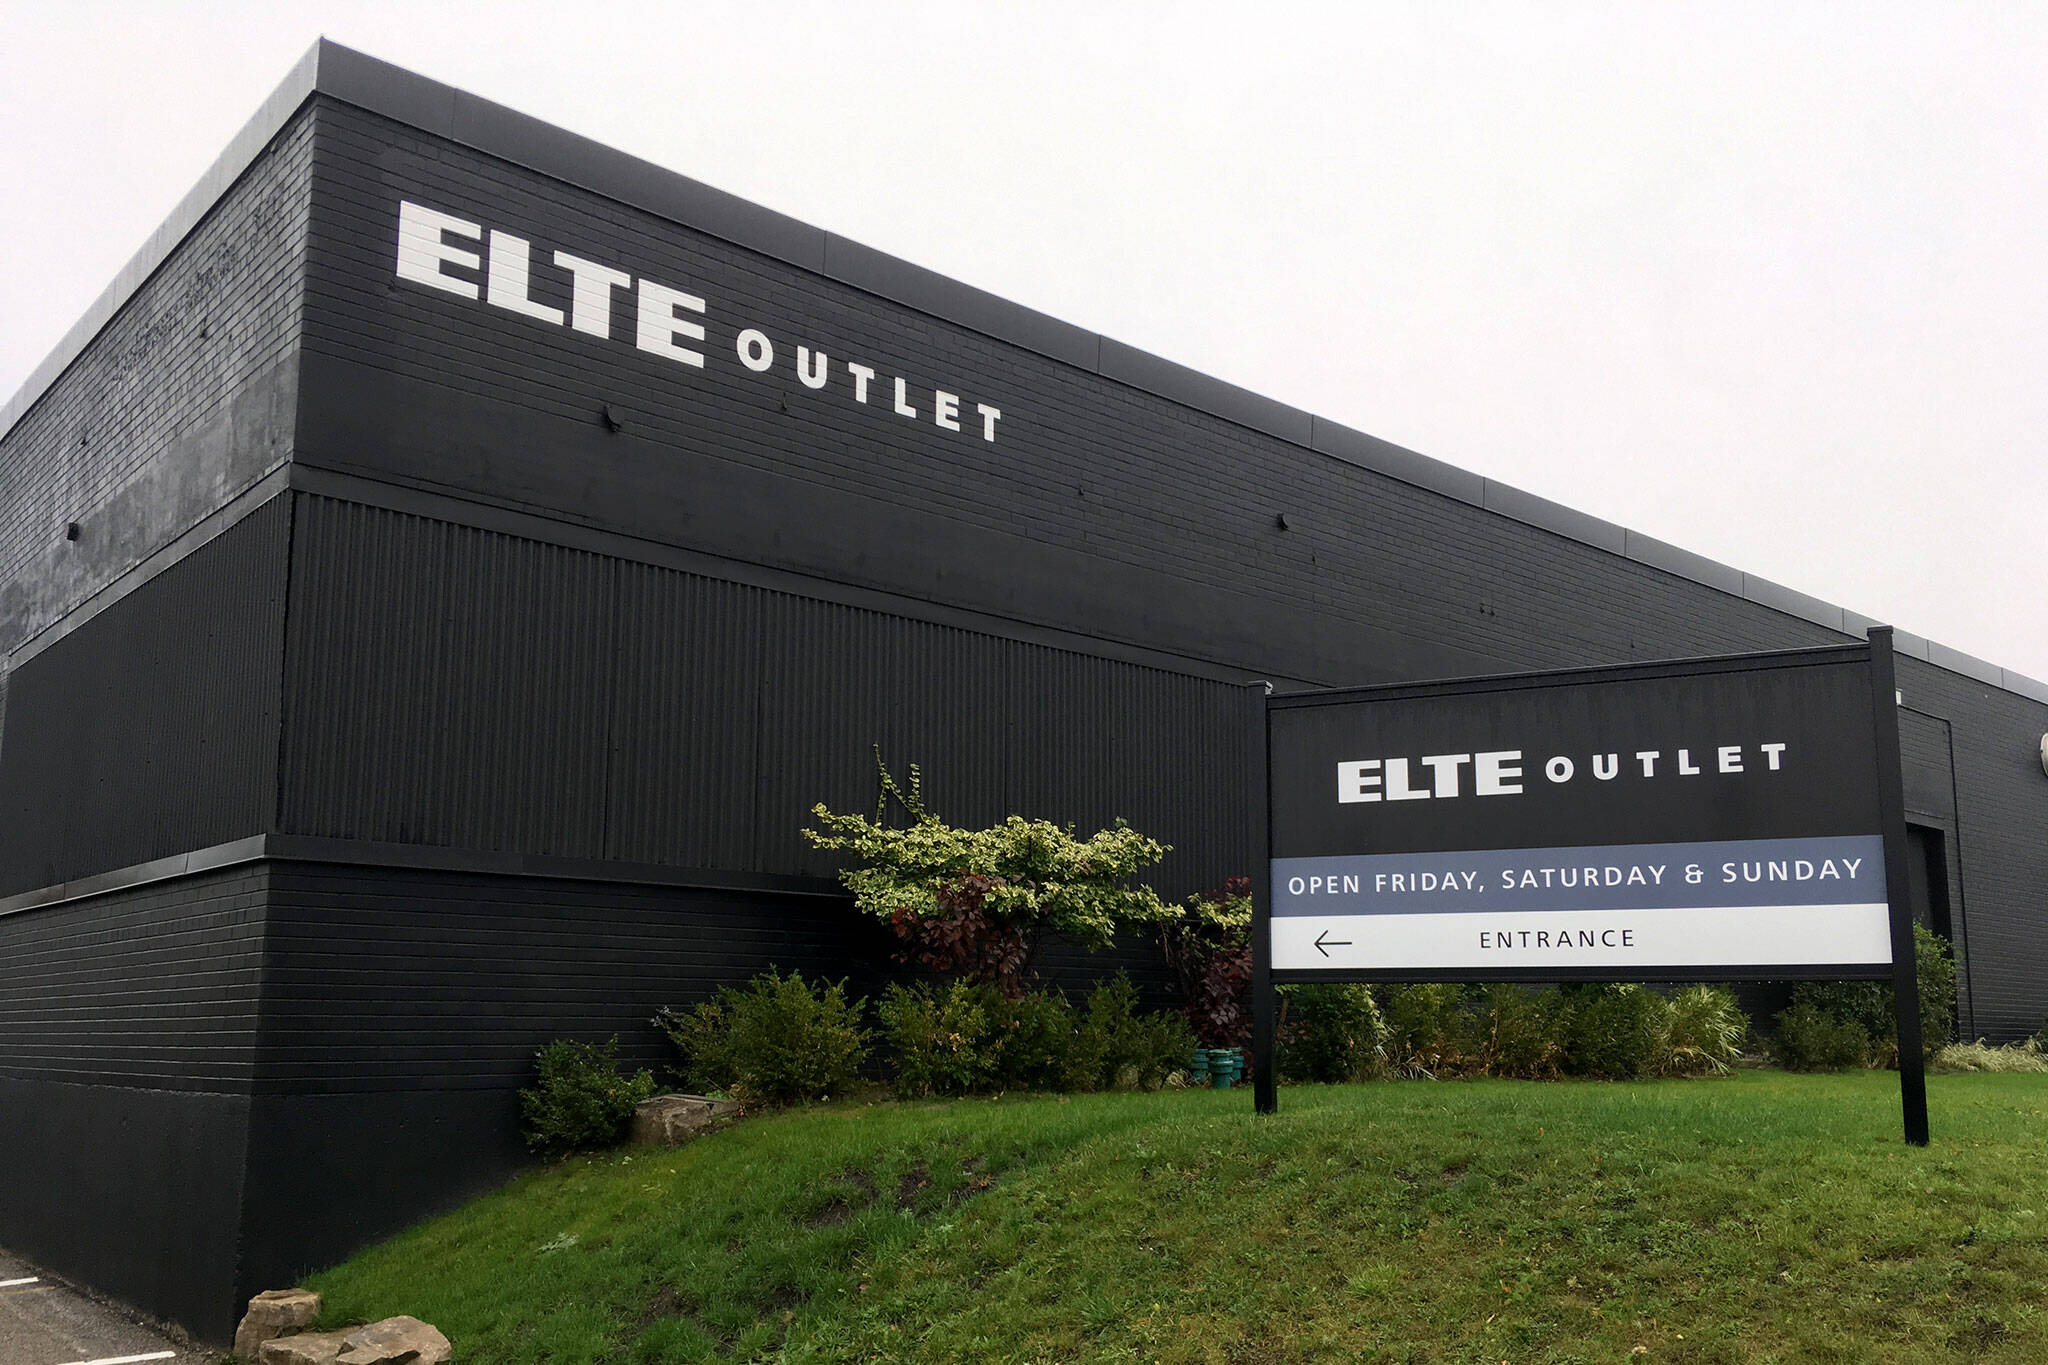 Elte Outlet Store